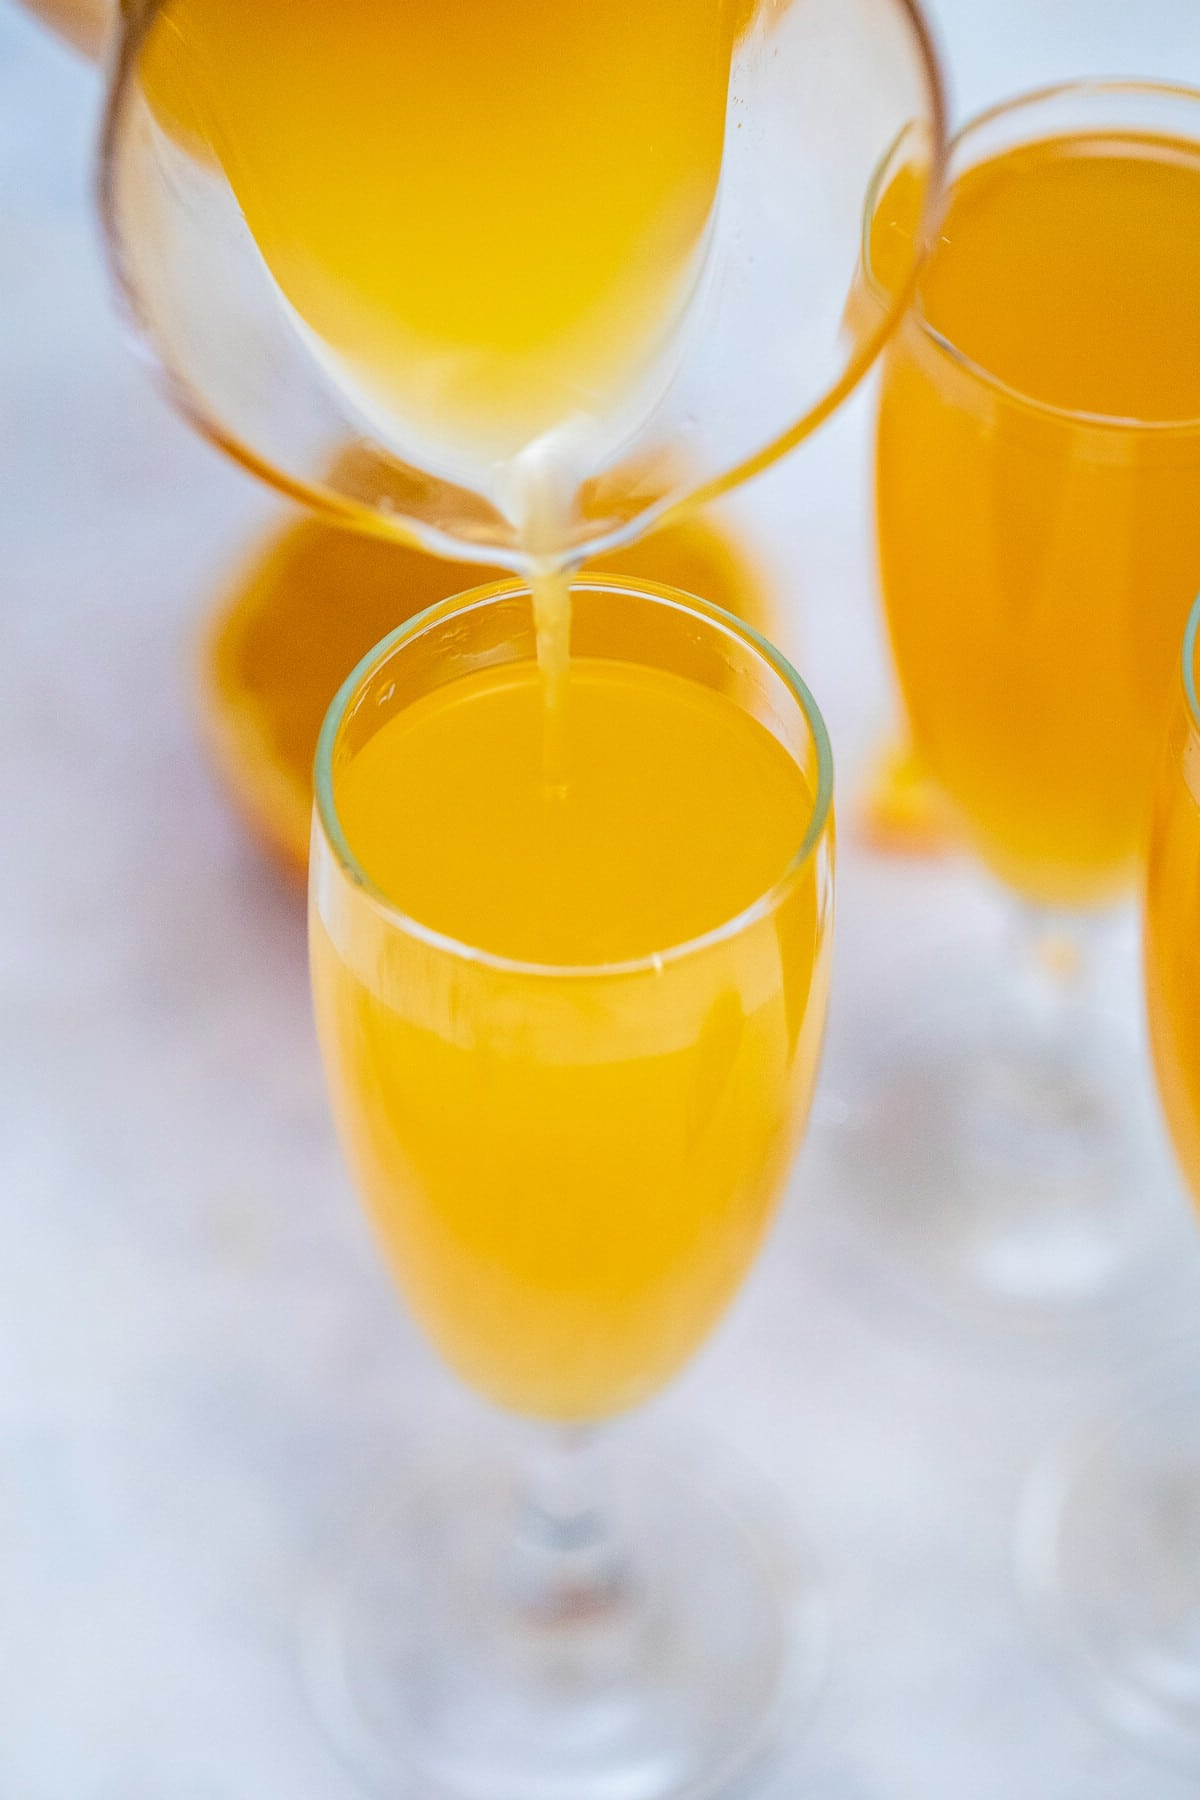 Adding orange juice to champagne flute